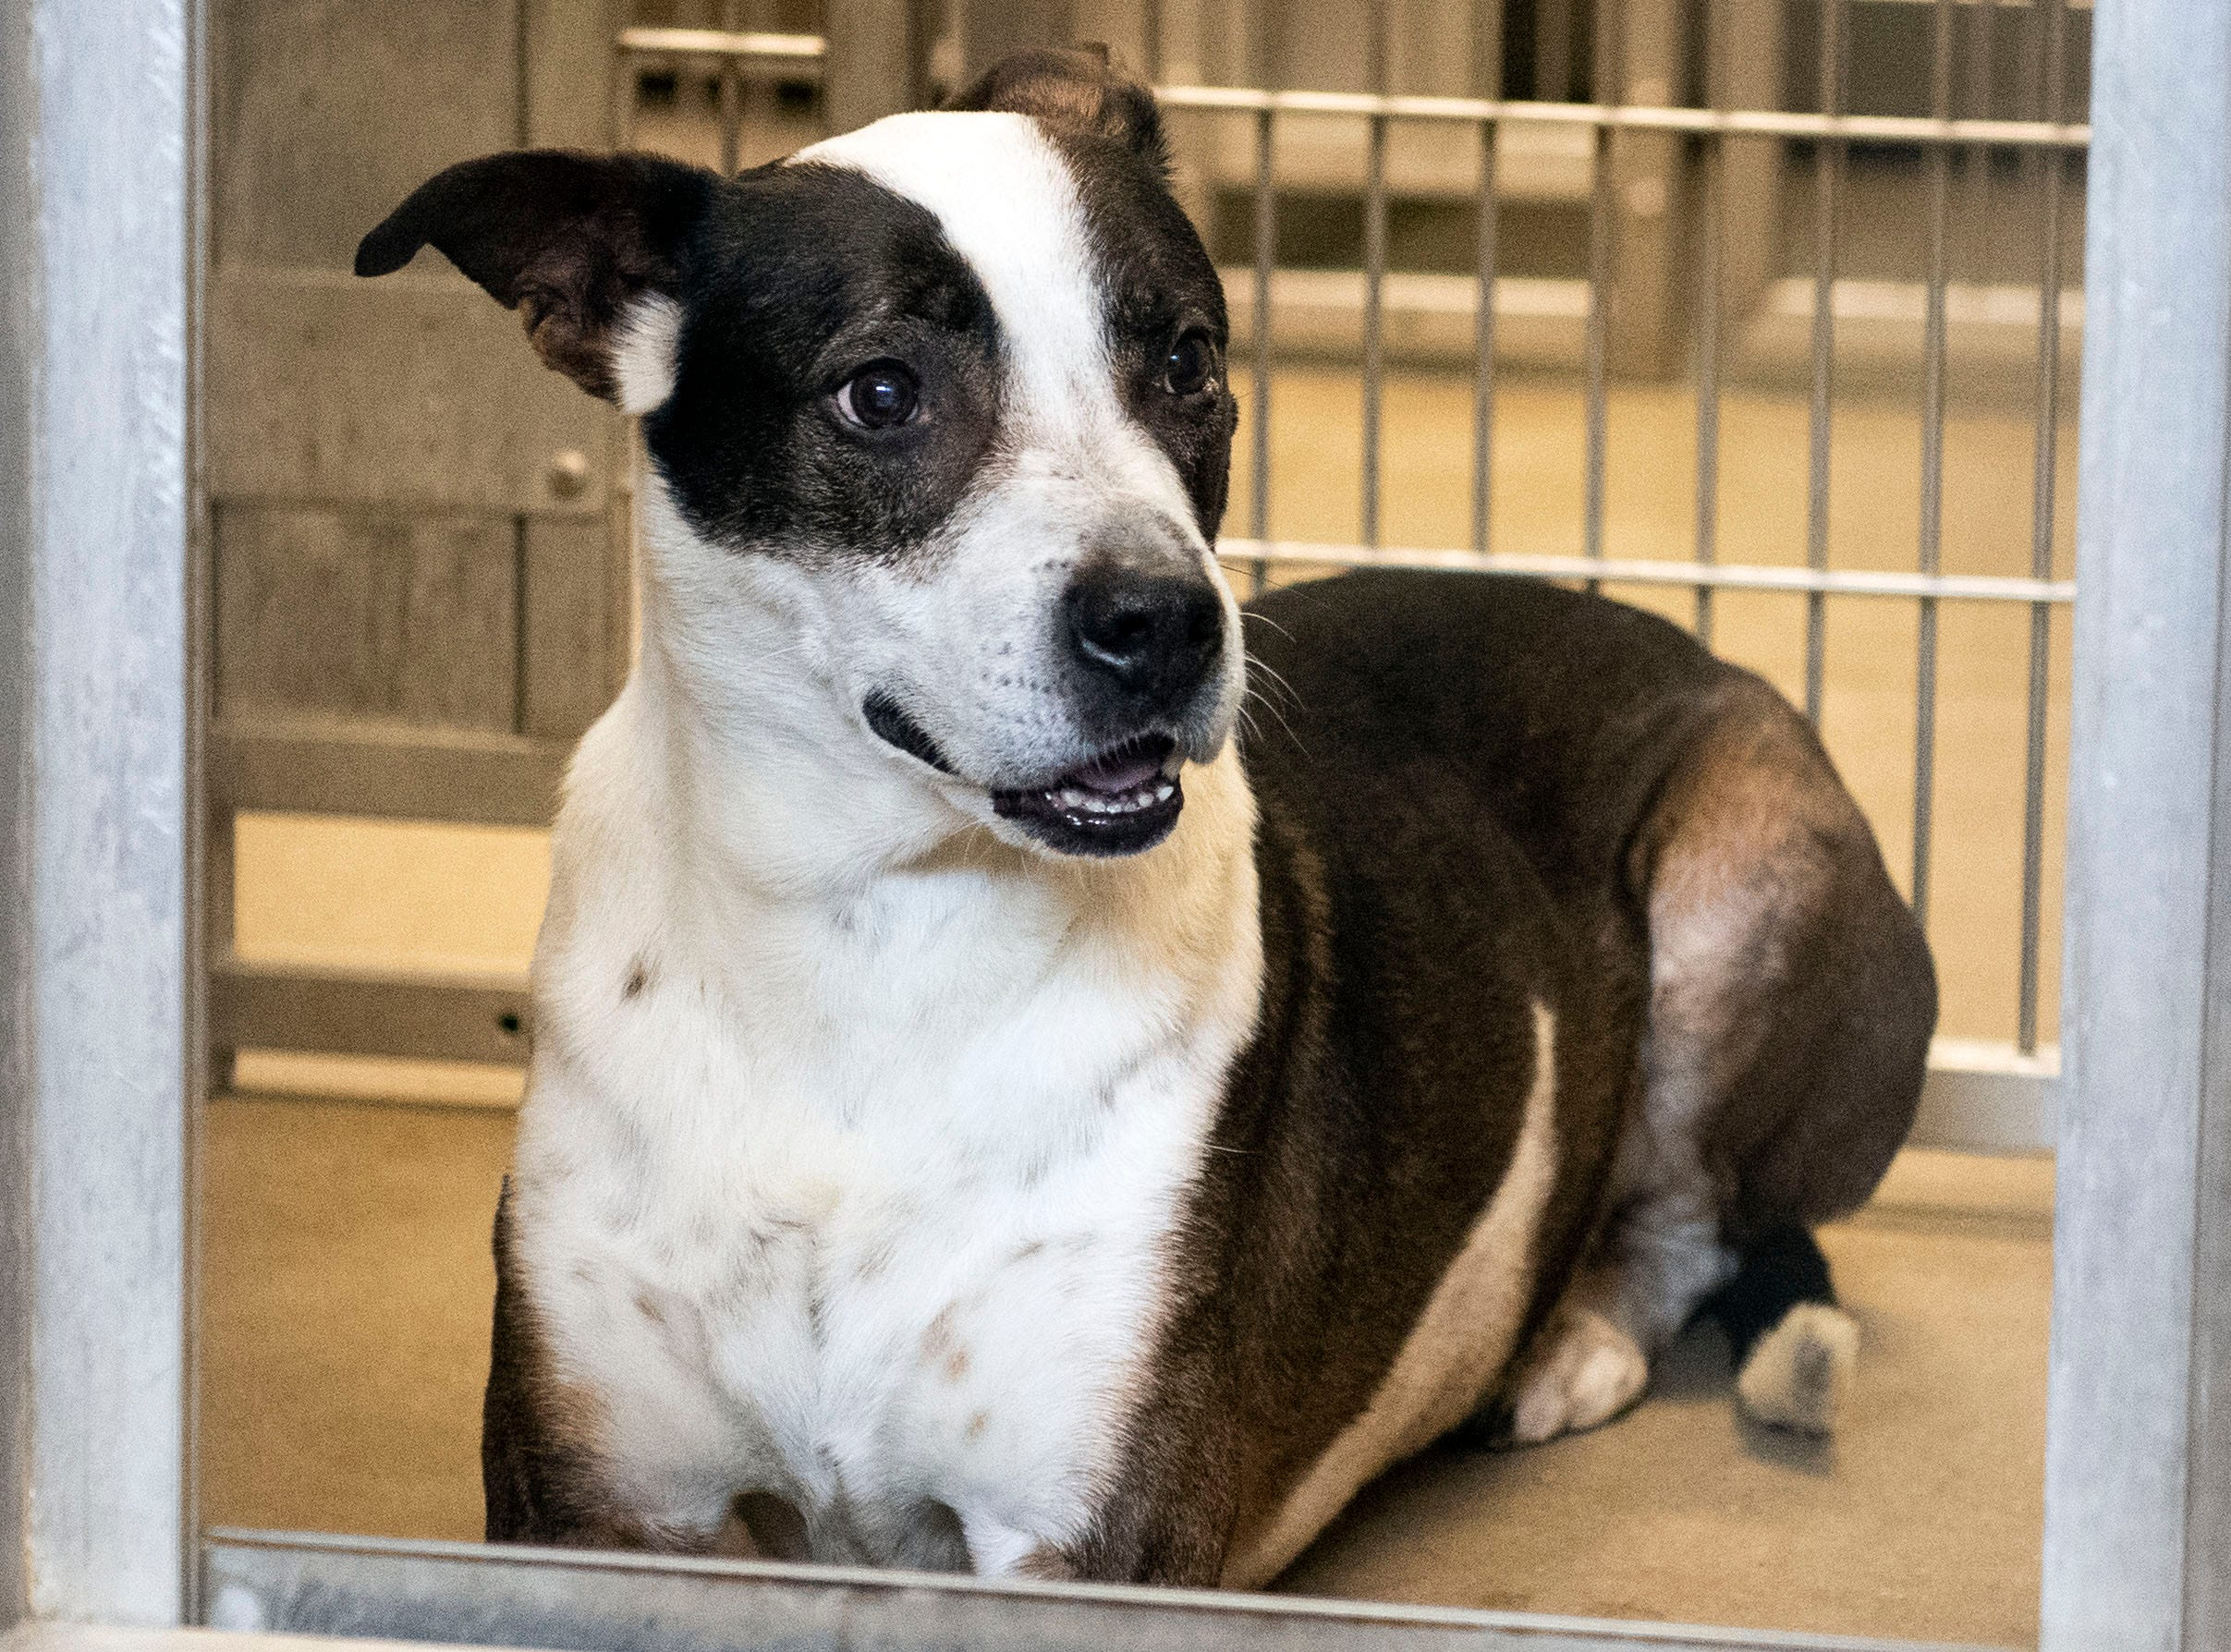 Major Payne, an Australian Cattle dog mix, 8-years old, at the York County SPCA, Thursday, Feb. 7, 2019.